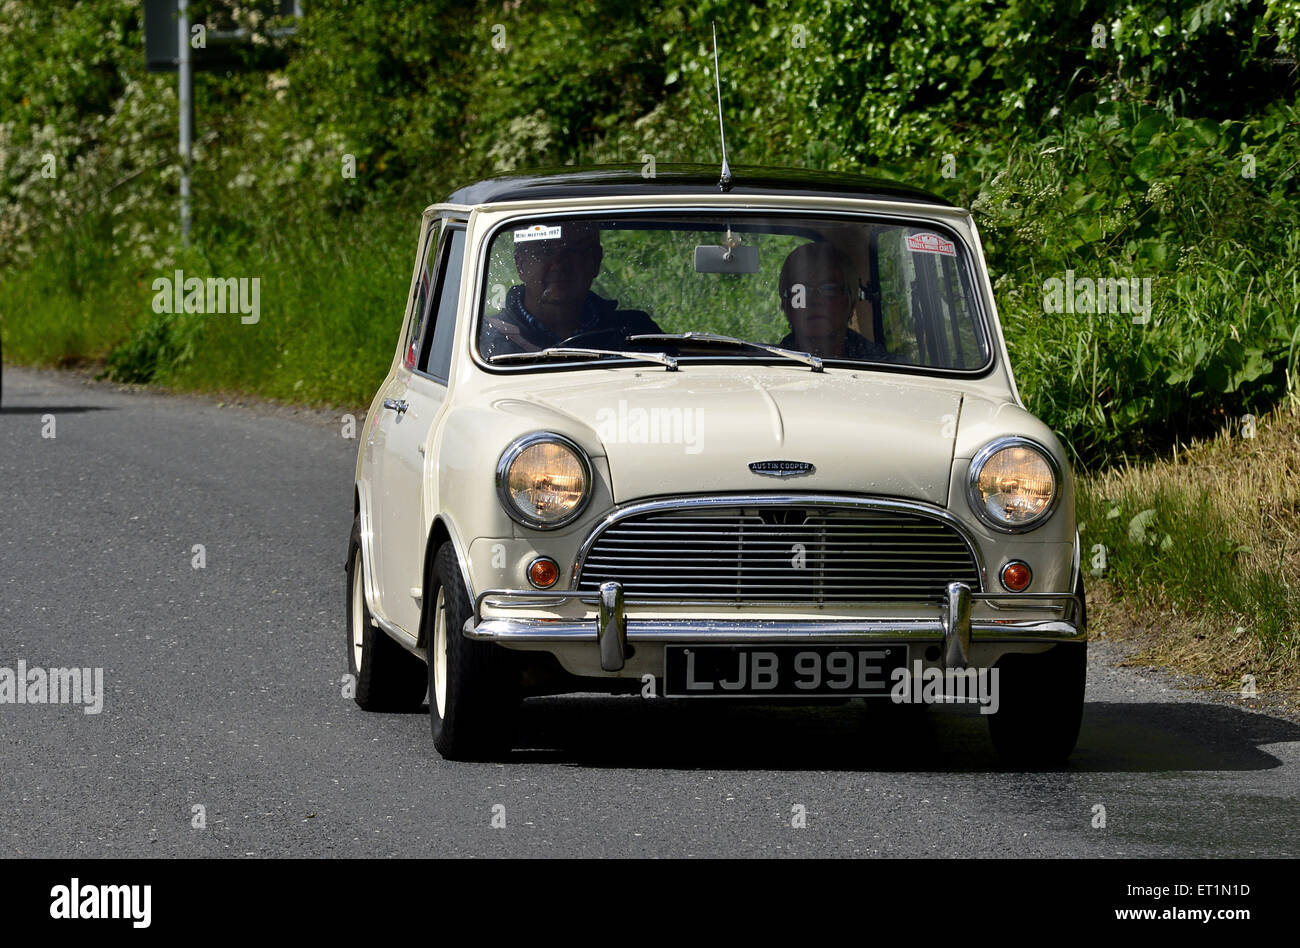 1960s austin mini cooper classic car on country road burnfoot stock photo royalty free image. Black Bedroom Furniture Sets. Home Design Ideas